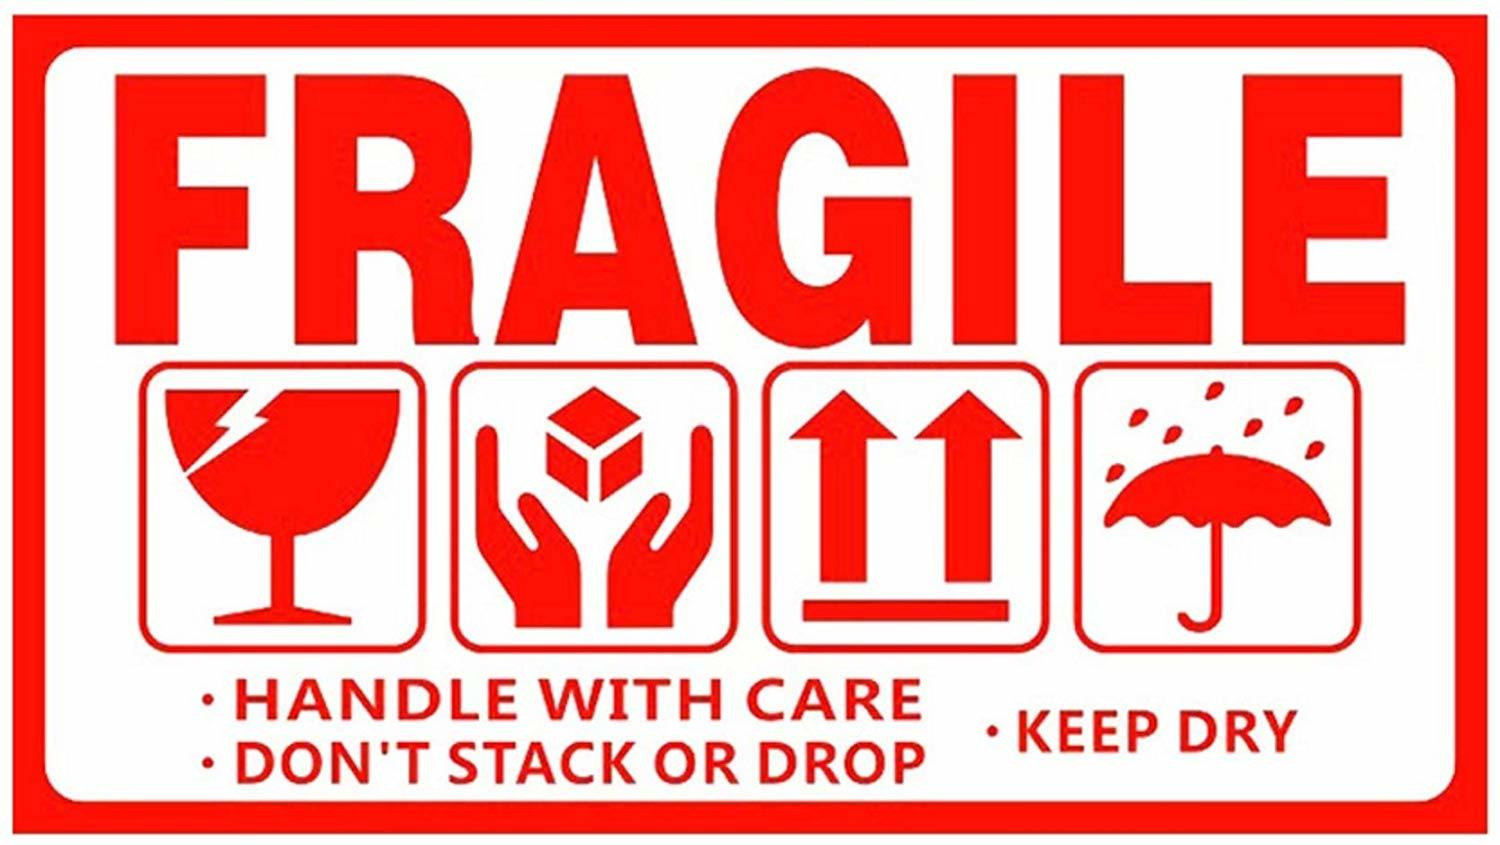 This is an image of Fragile Glass Labels Printable regarding electronics